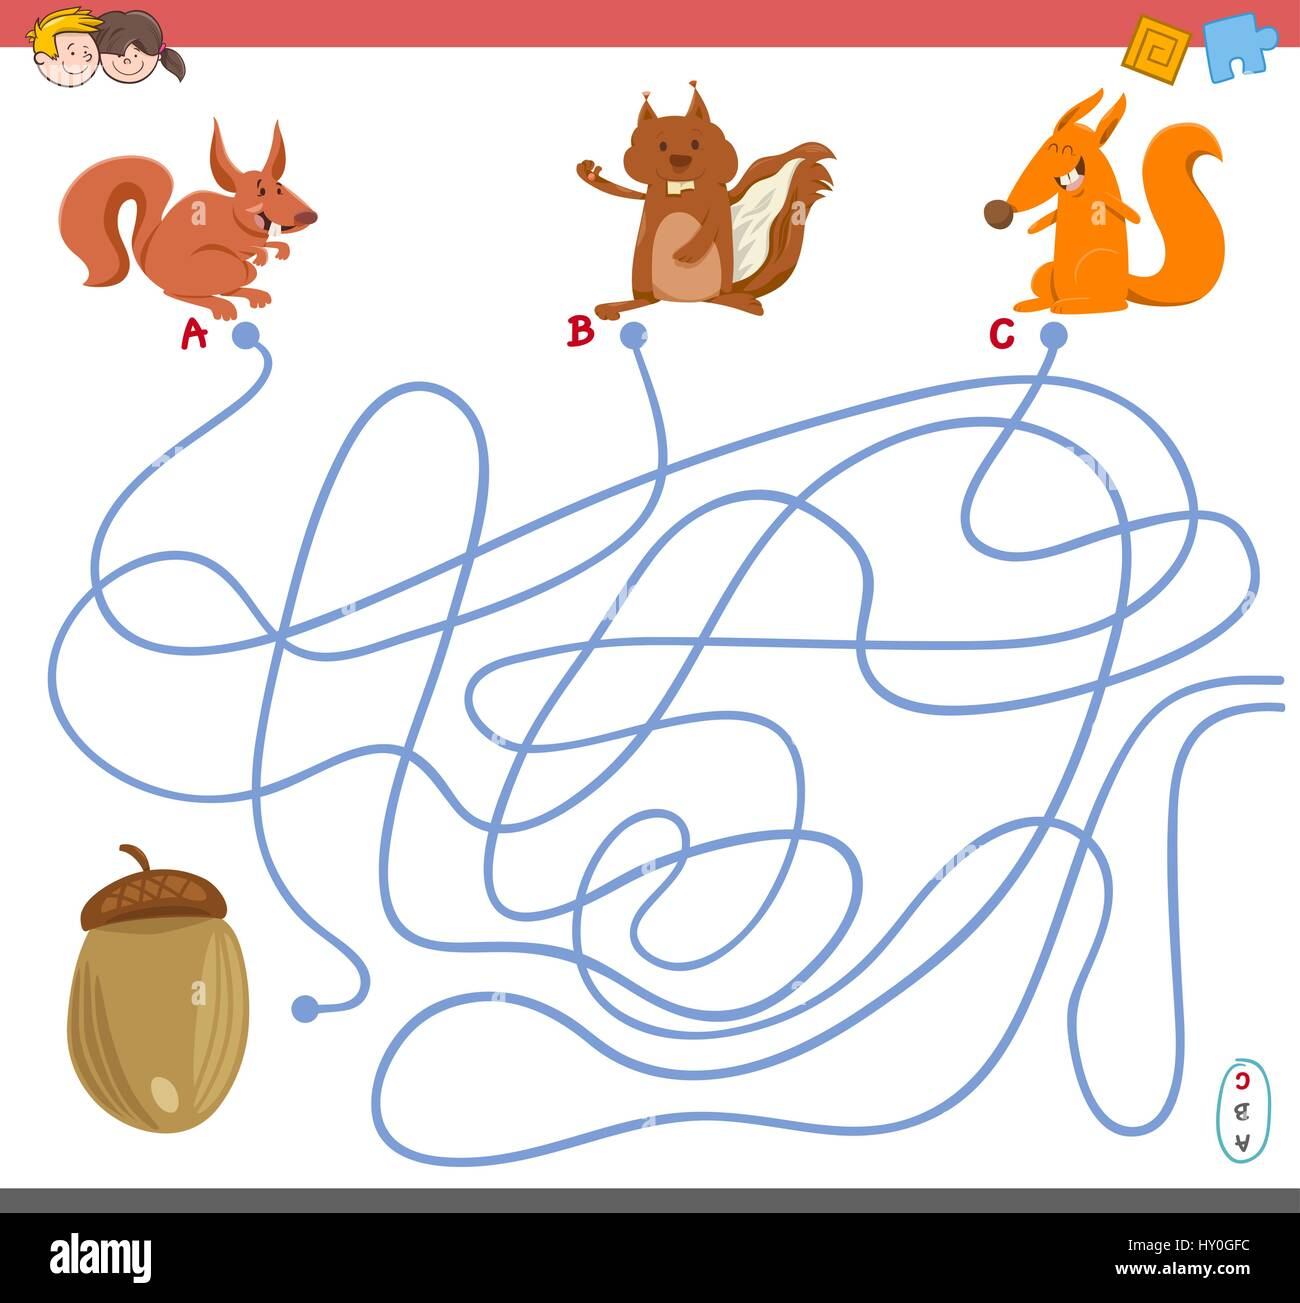 Cartoon Illustration Of Paths Or Maze Puzzle Activity Game